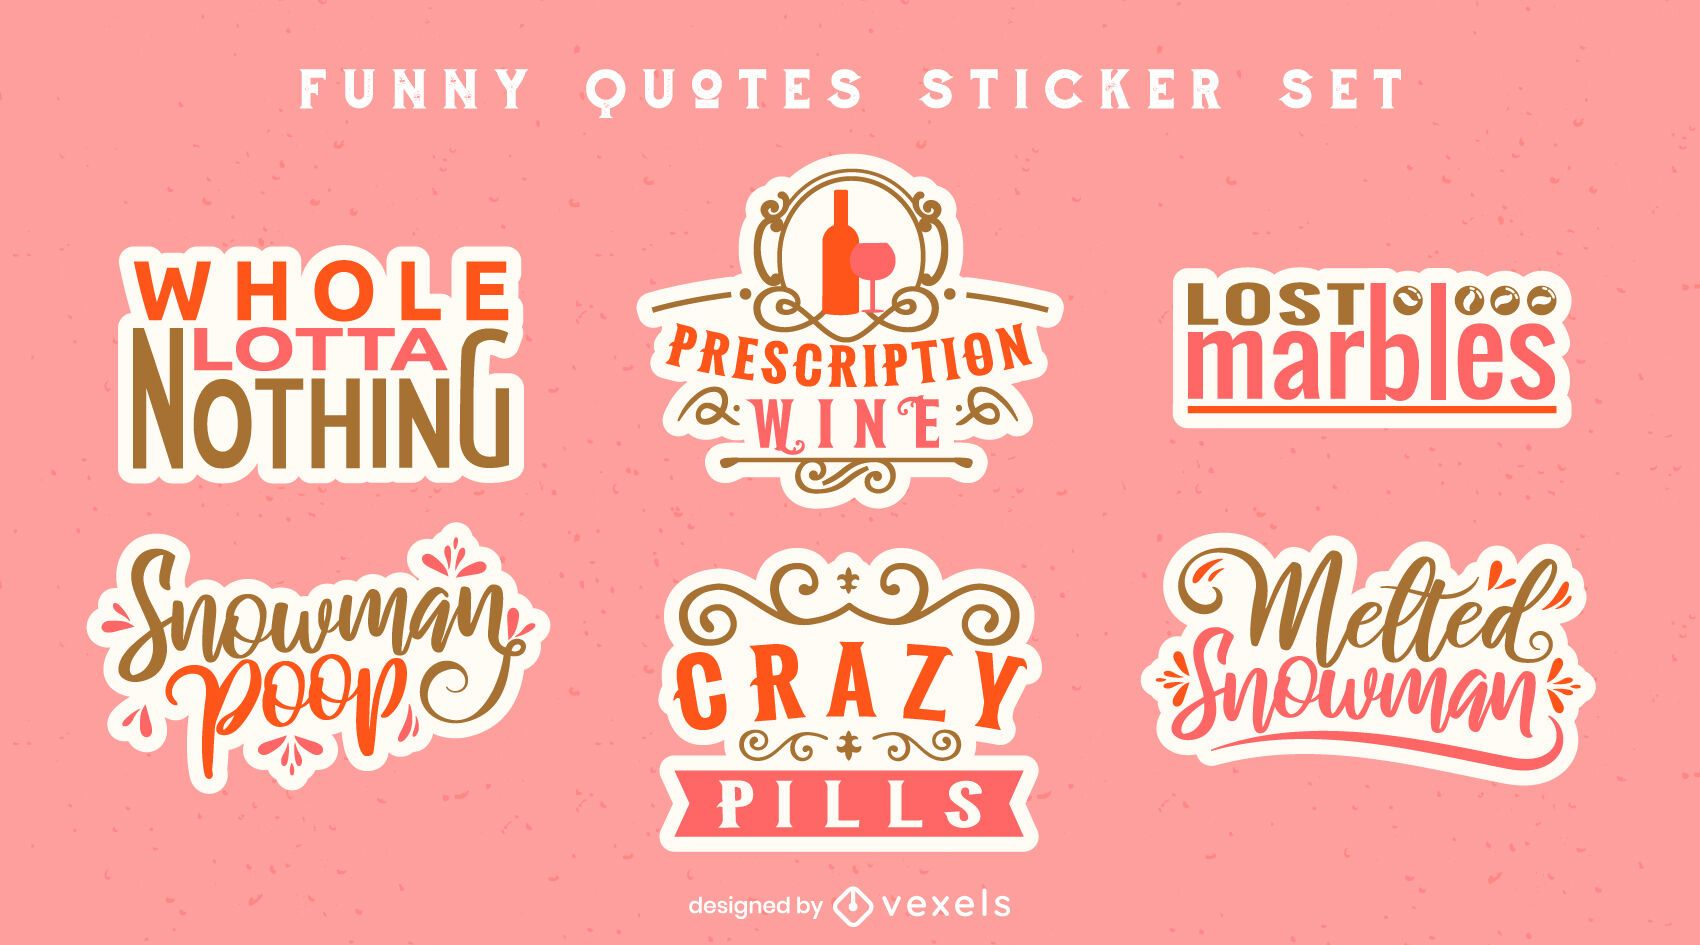 Funny quotes sticker set